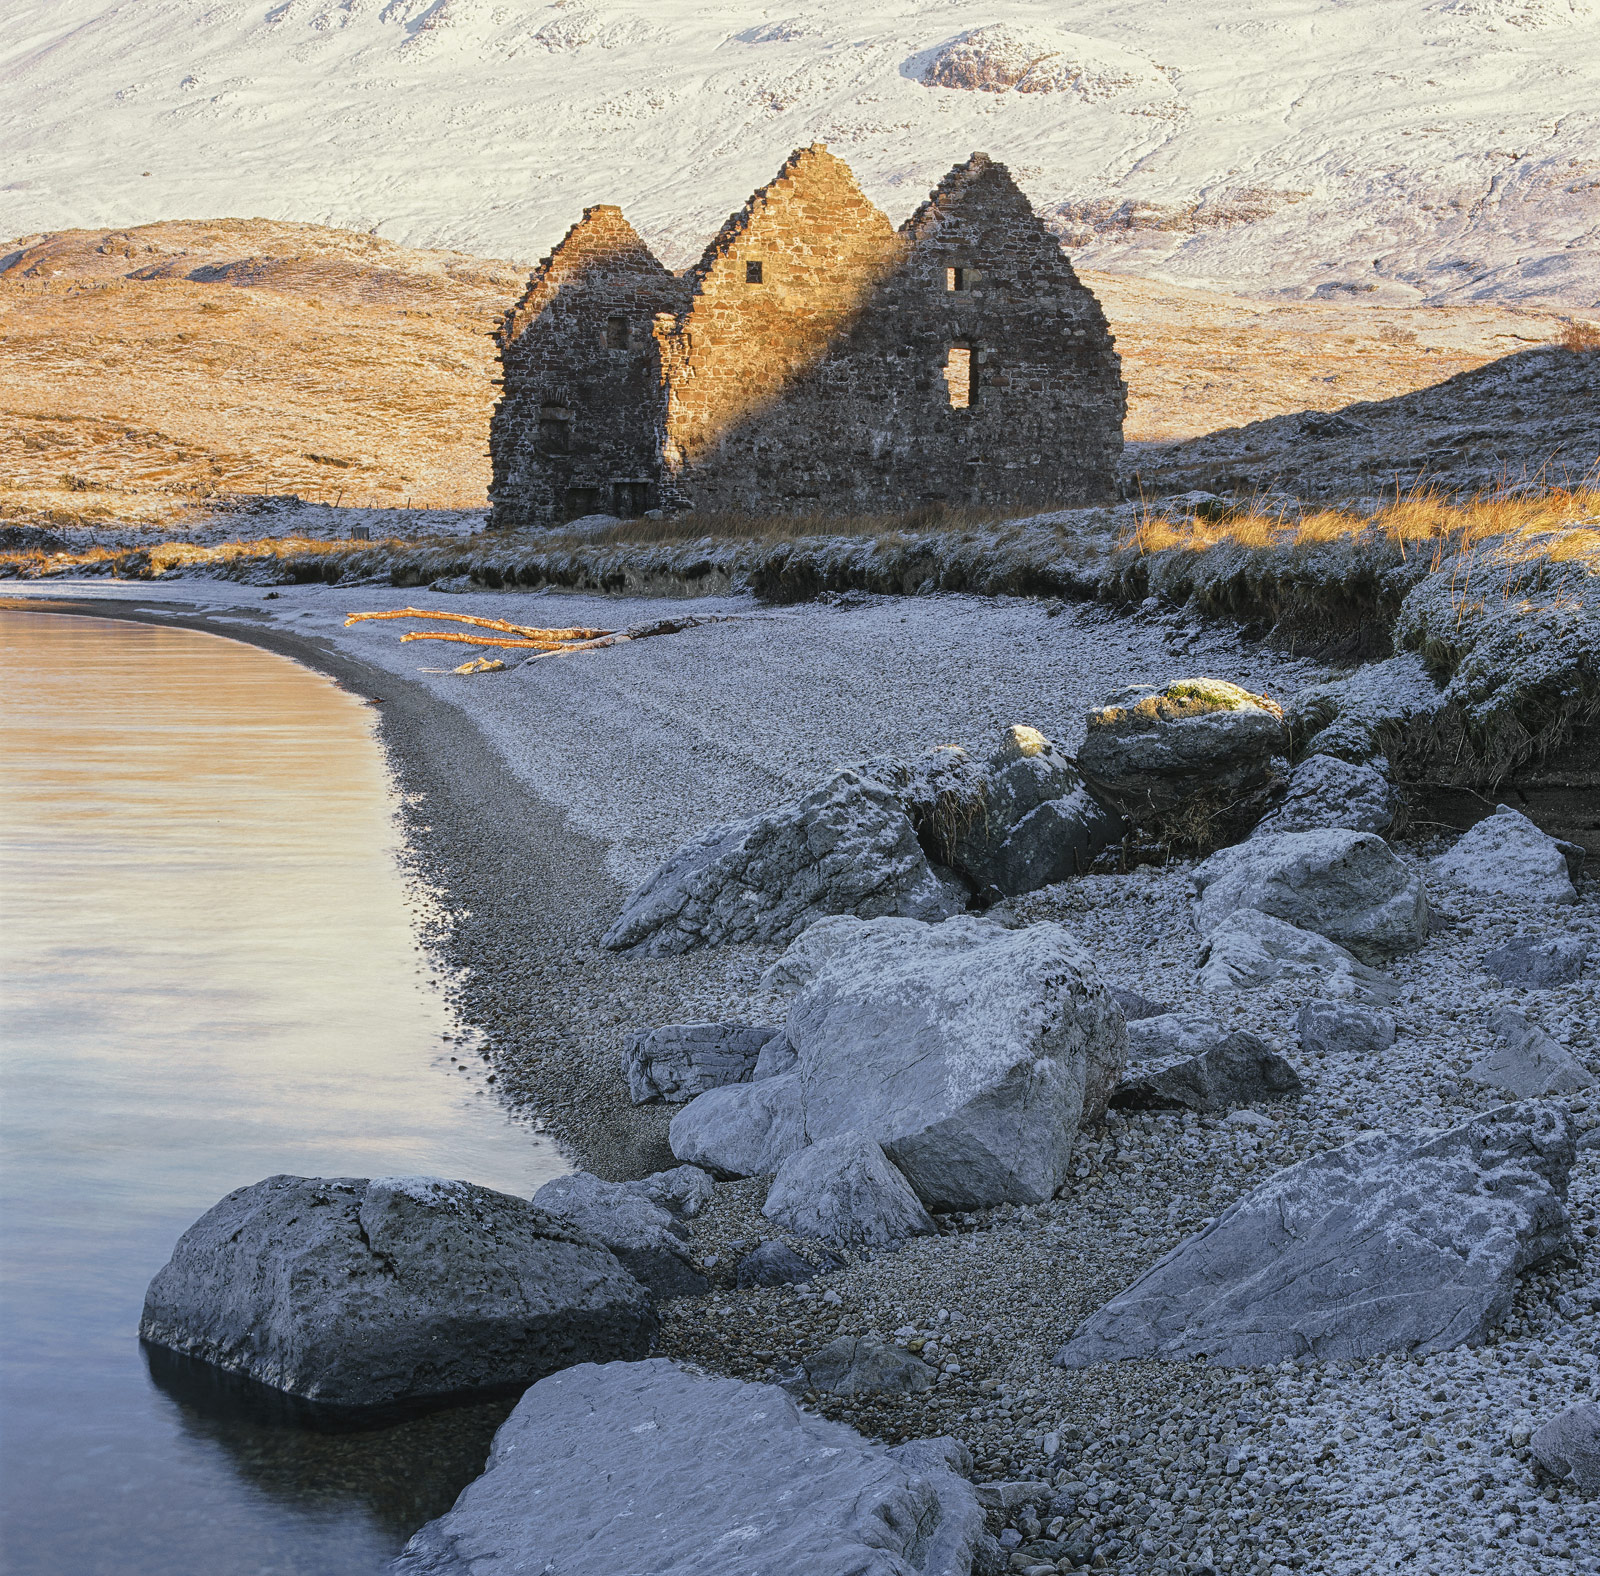 Calda House a derelict double gable ended ruin at the edge of Loch assynt near Ardvreck Castle has quite a history behind it...